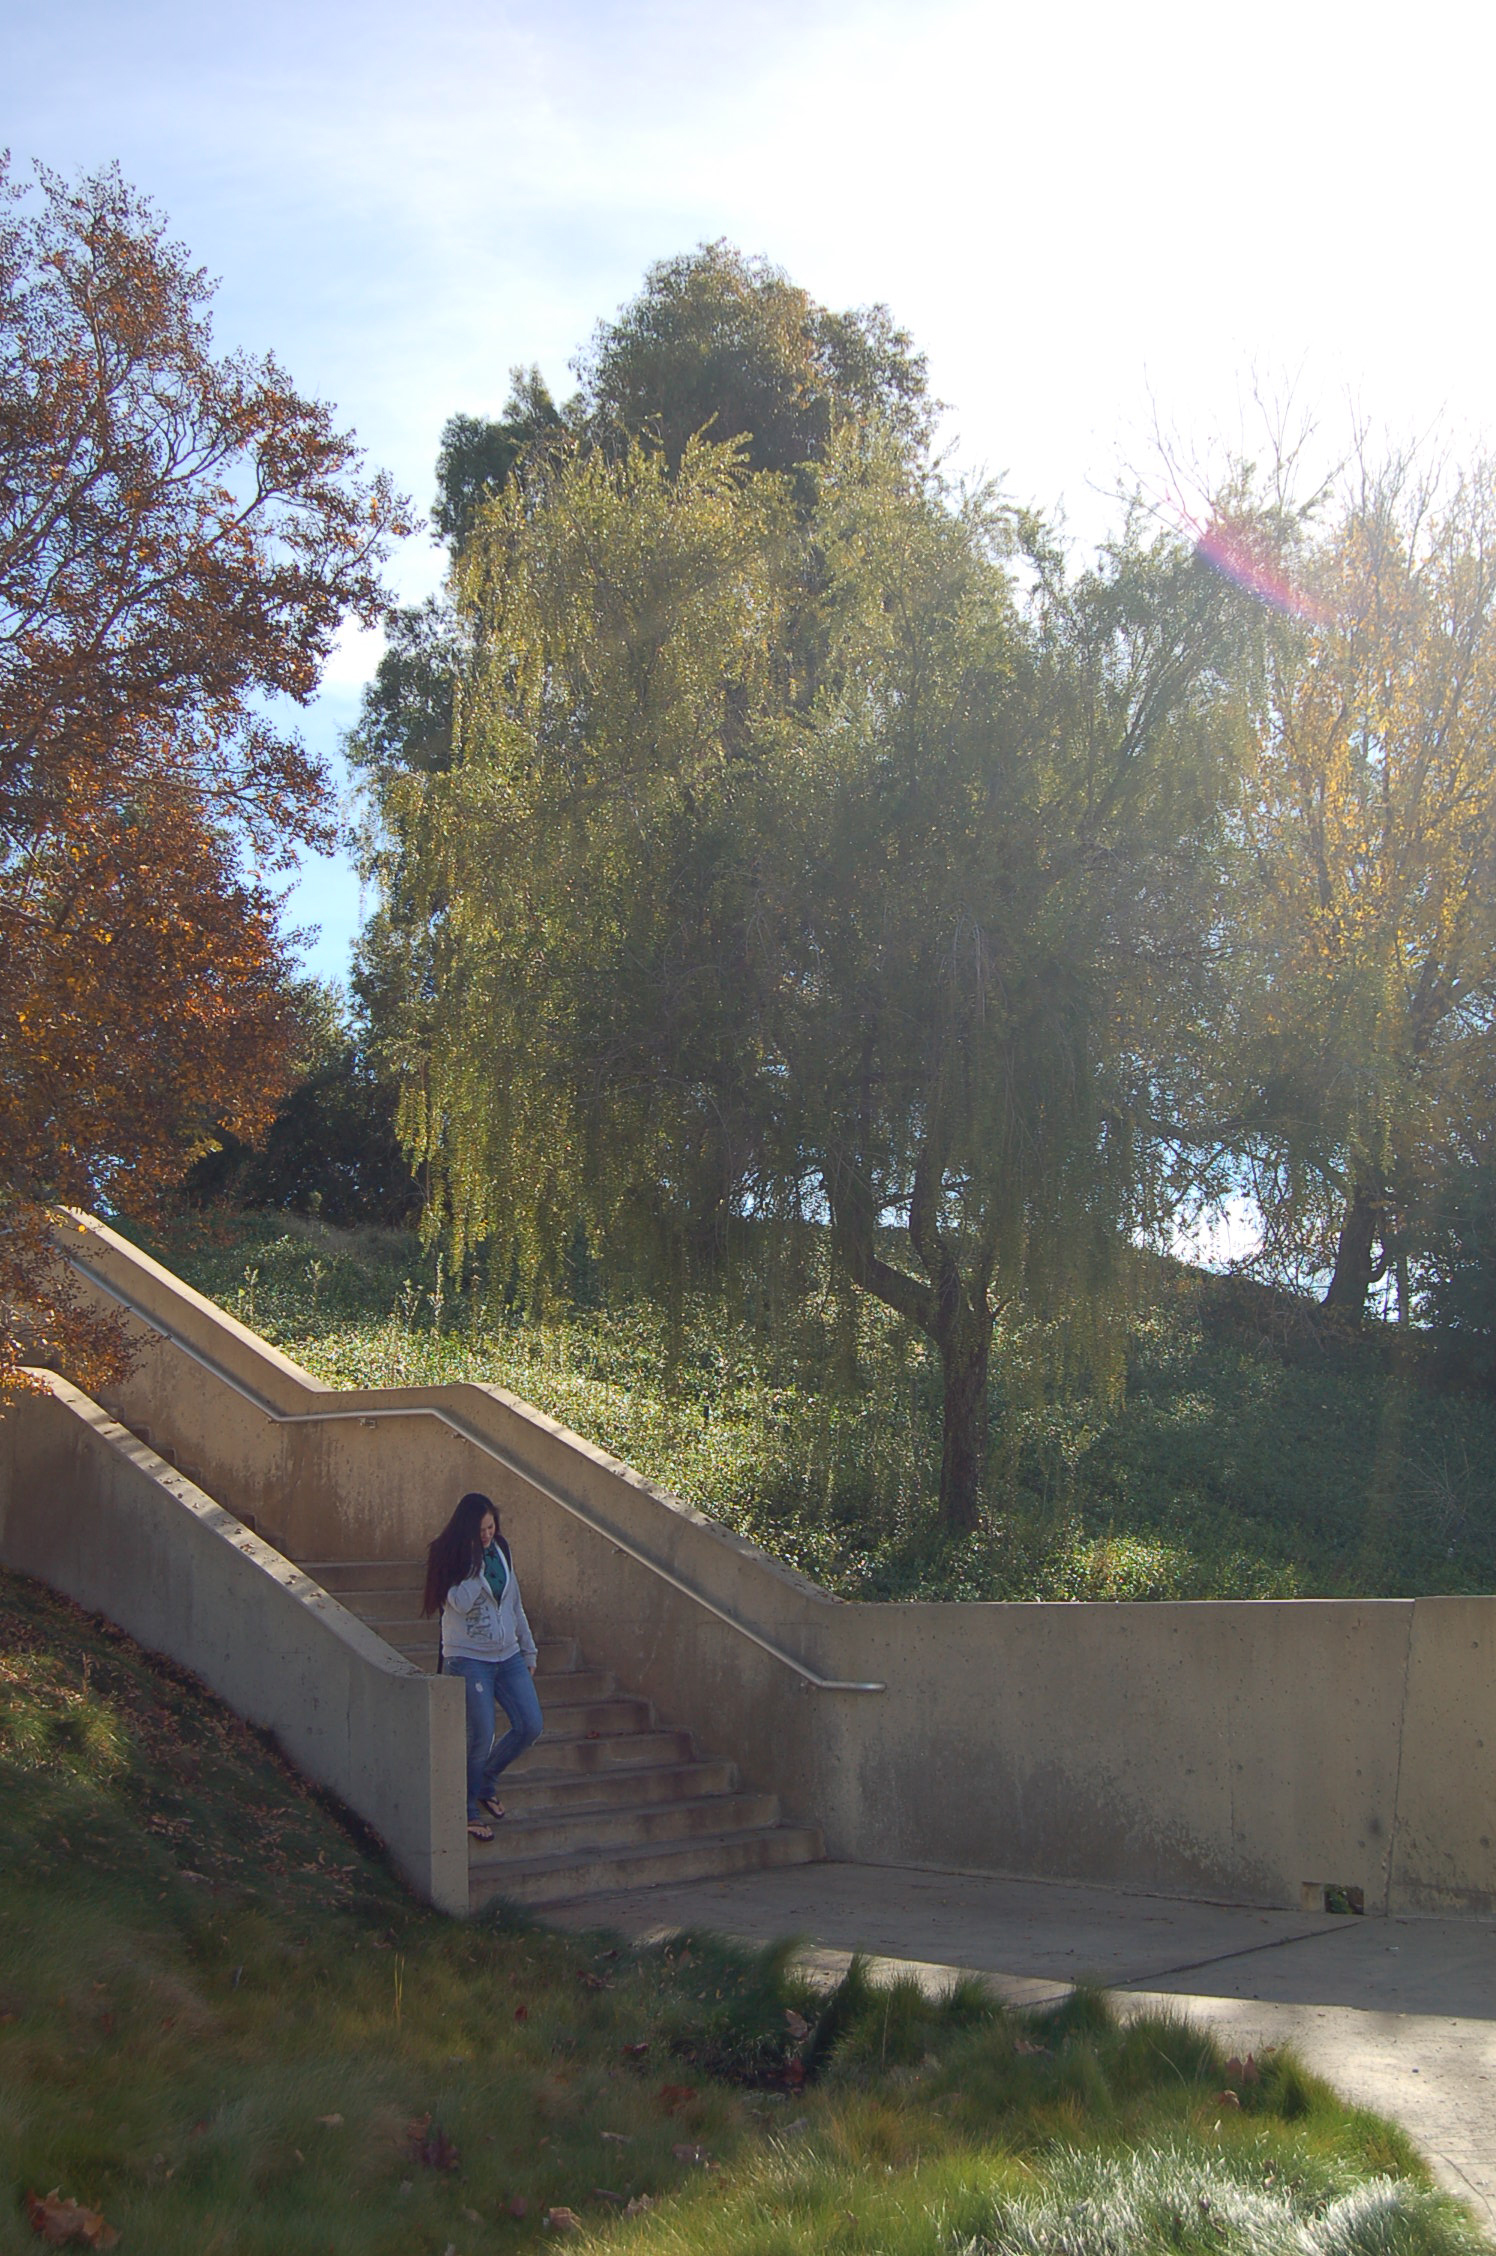 A student on a staircase by some trees.